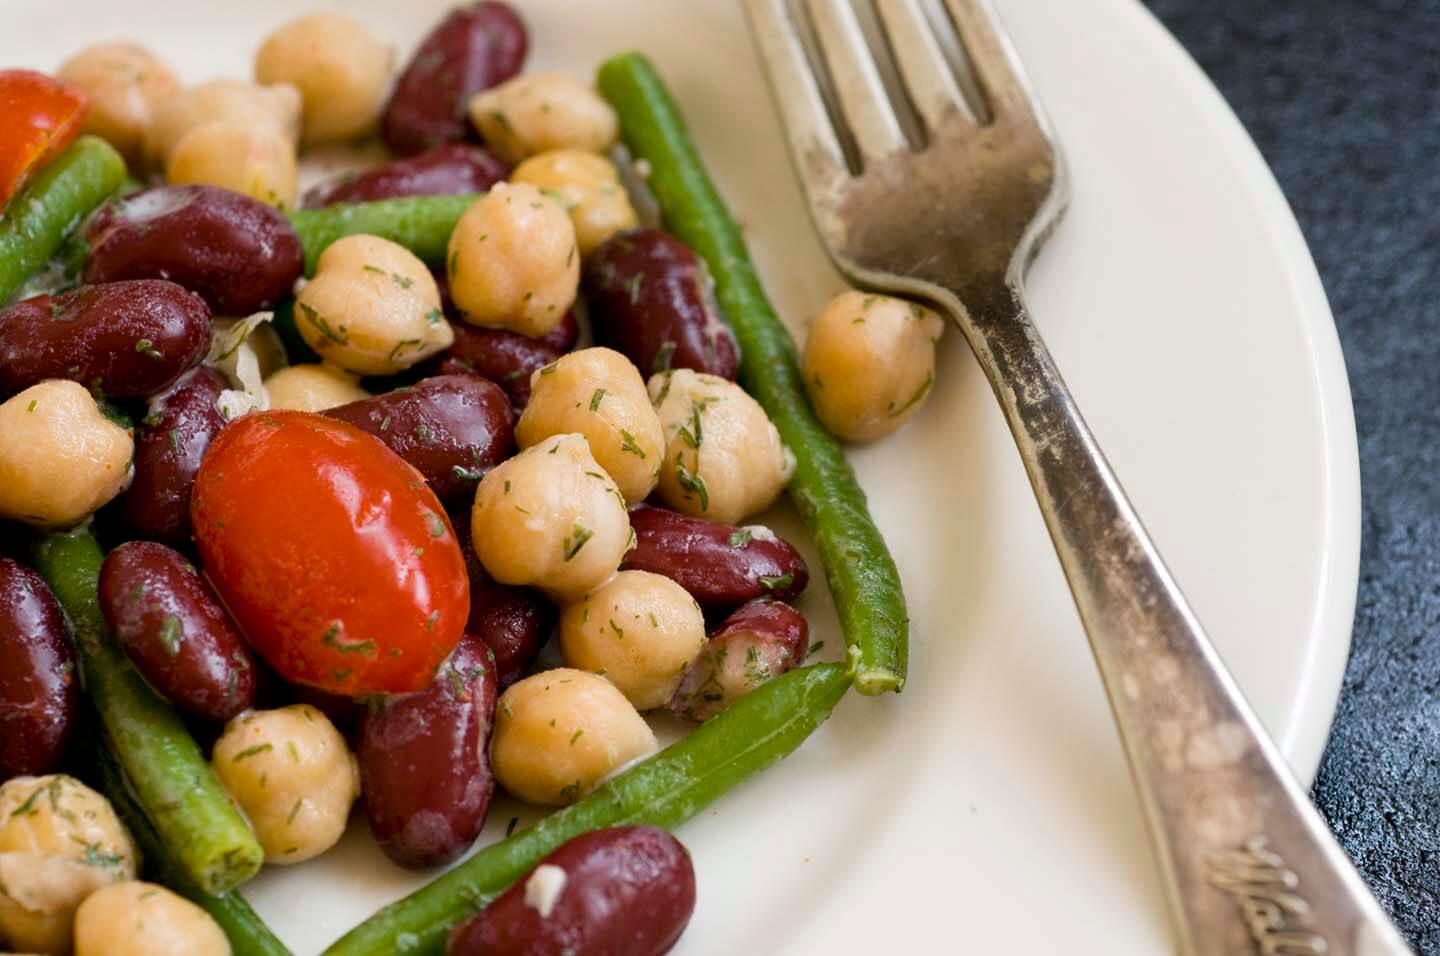 Three-bean salad with dill dressing | Homesick Texan